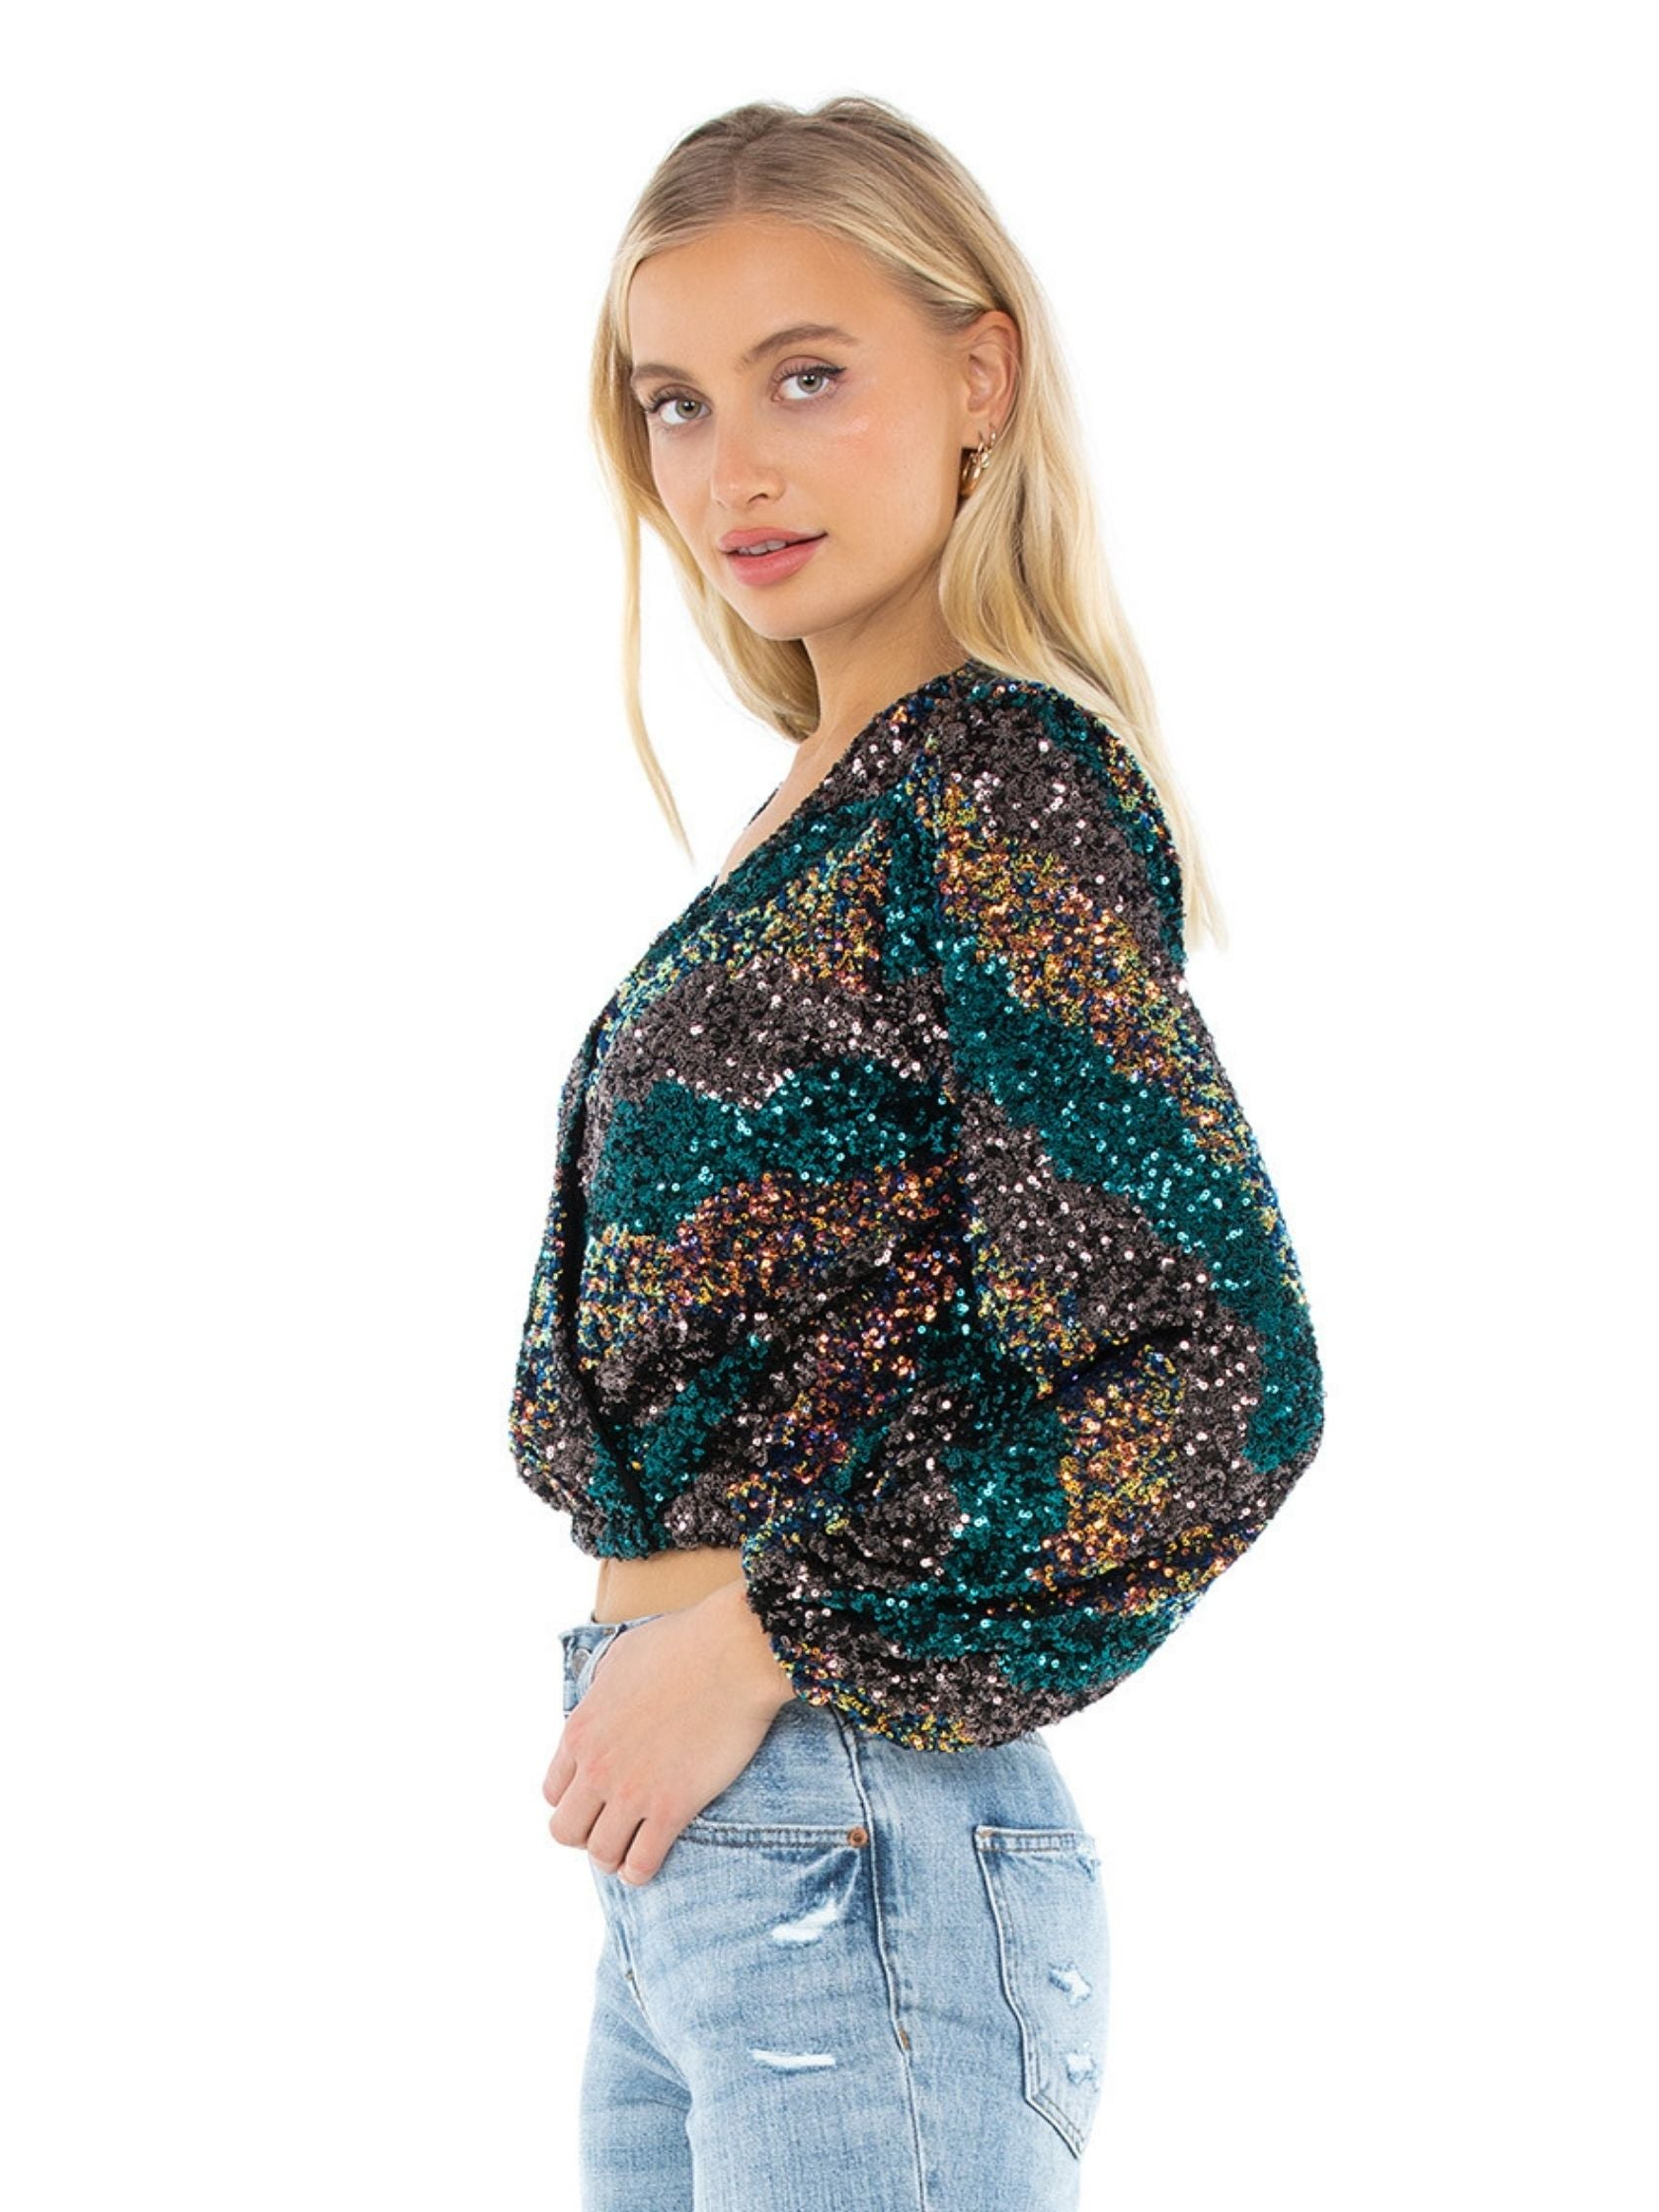 Women wearing a top rental from ASTR called Primadonna Sequin Top